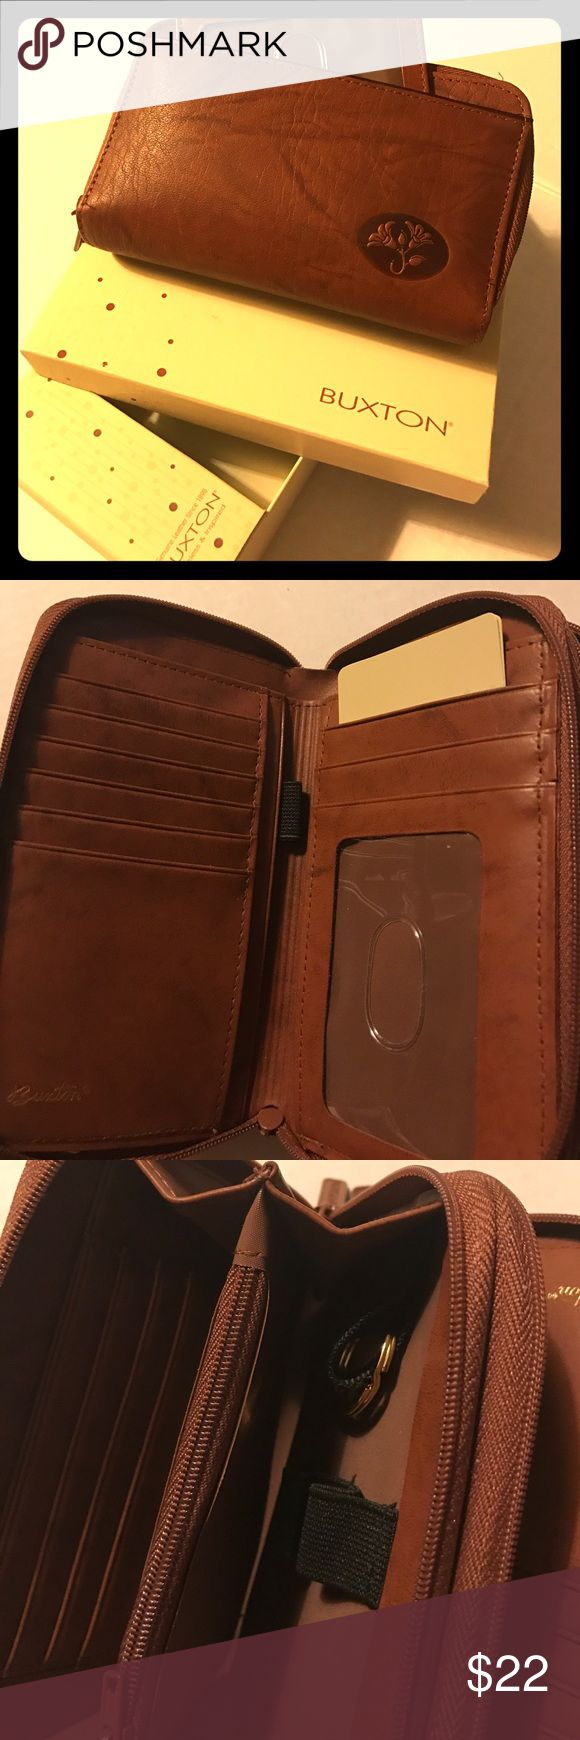 BUXTON WALLET, Genuine Leather, In Box, Never Used Brown leather - multiple card pockets - pull out ID sleeve - key ring attached - 2 zippered change pockets. Buxton Bags Wallets